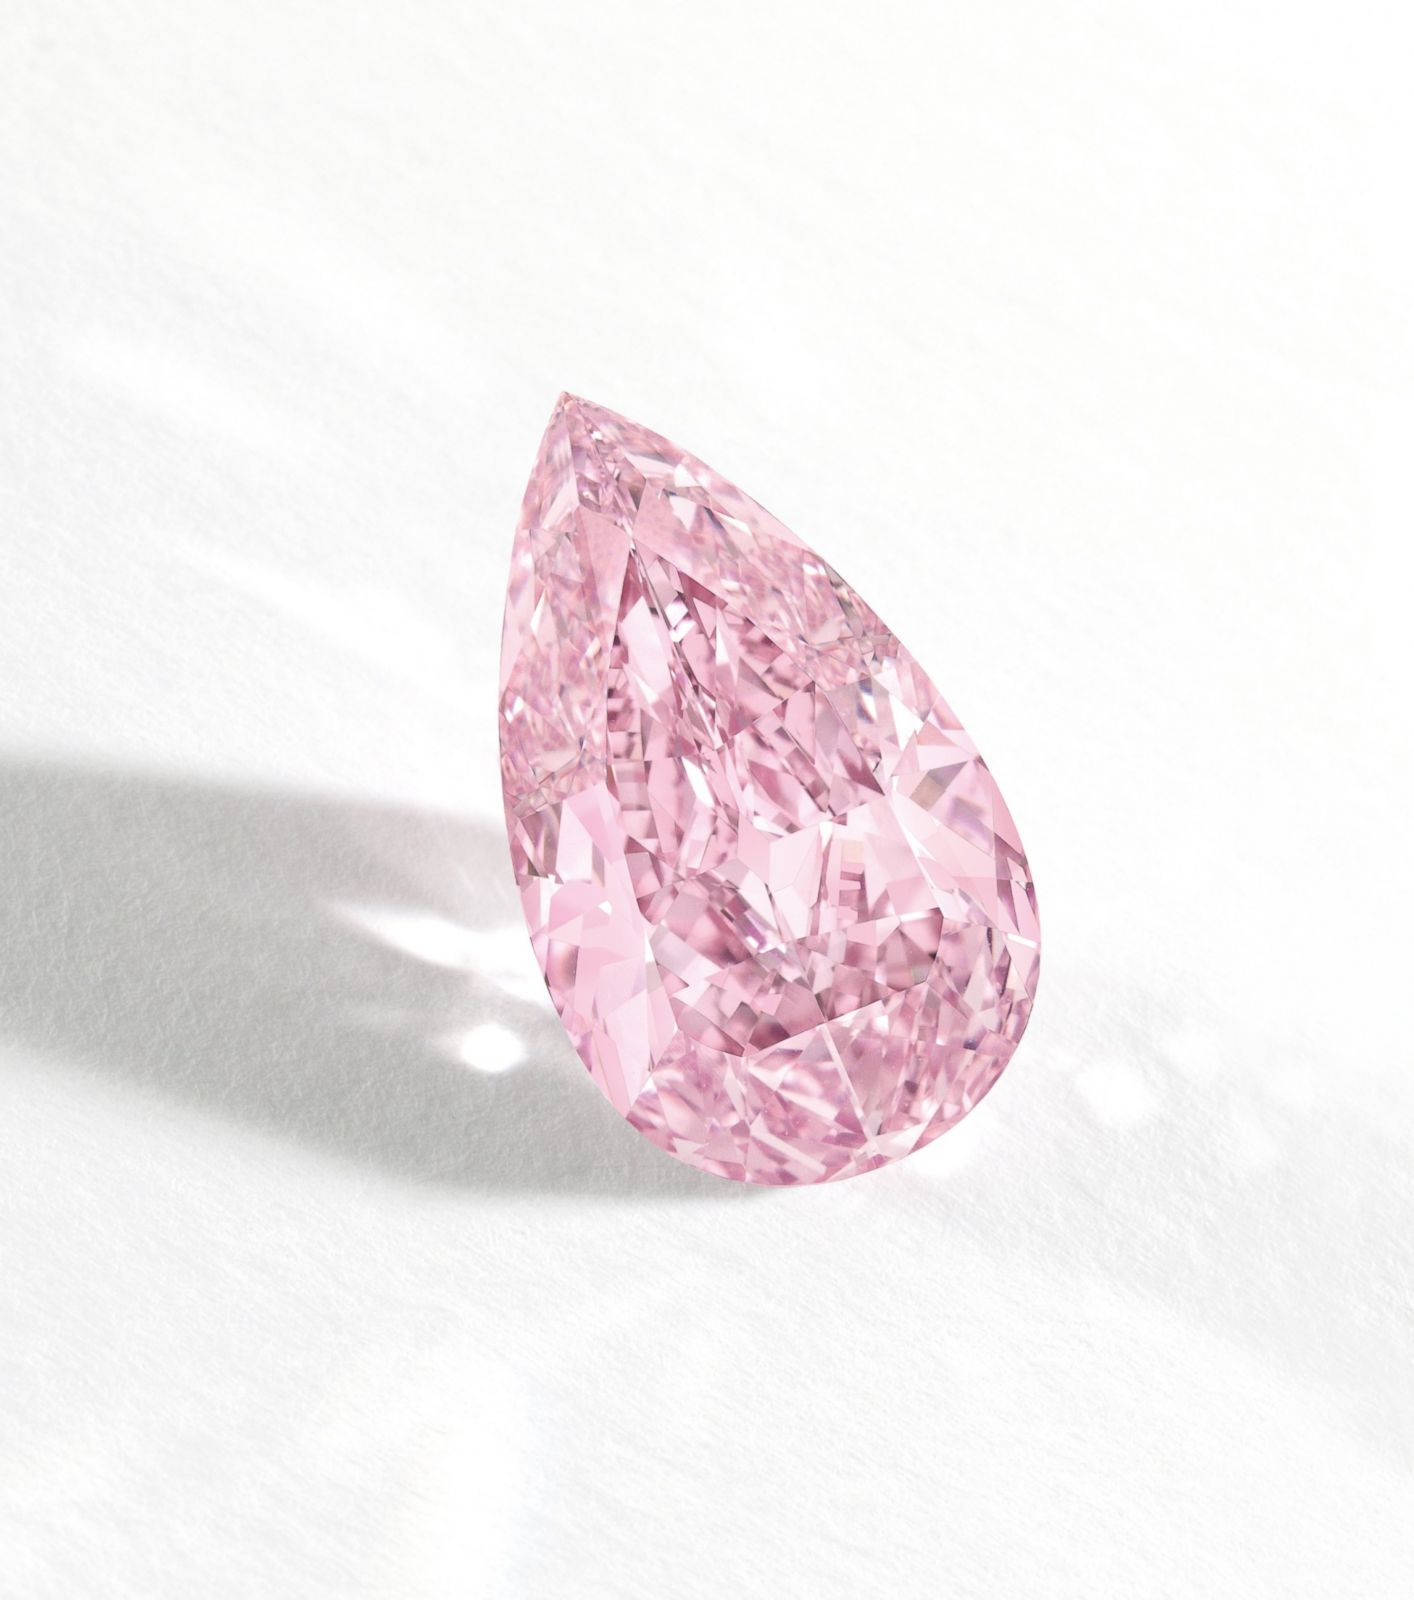 8.41-Carat Pink Diamond Sells for Record $17.77M Picture | Precious ...